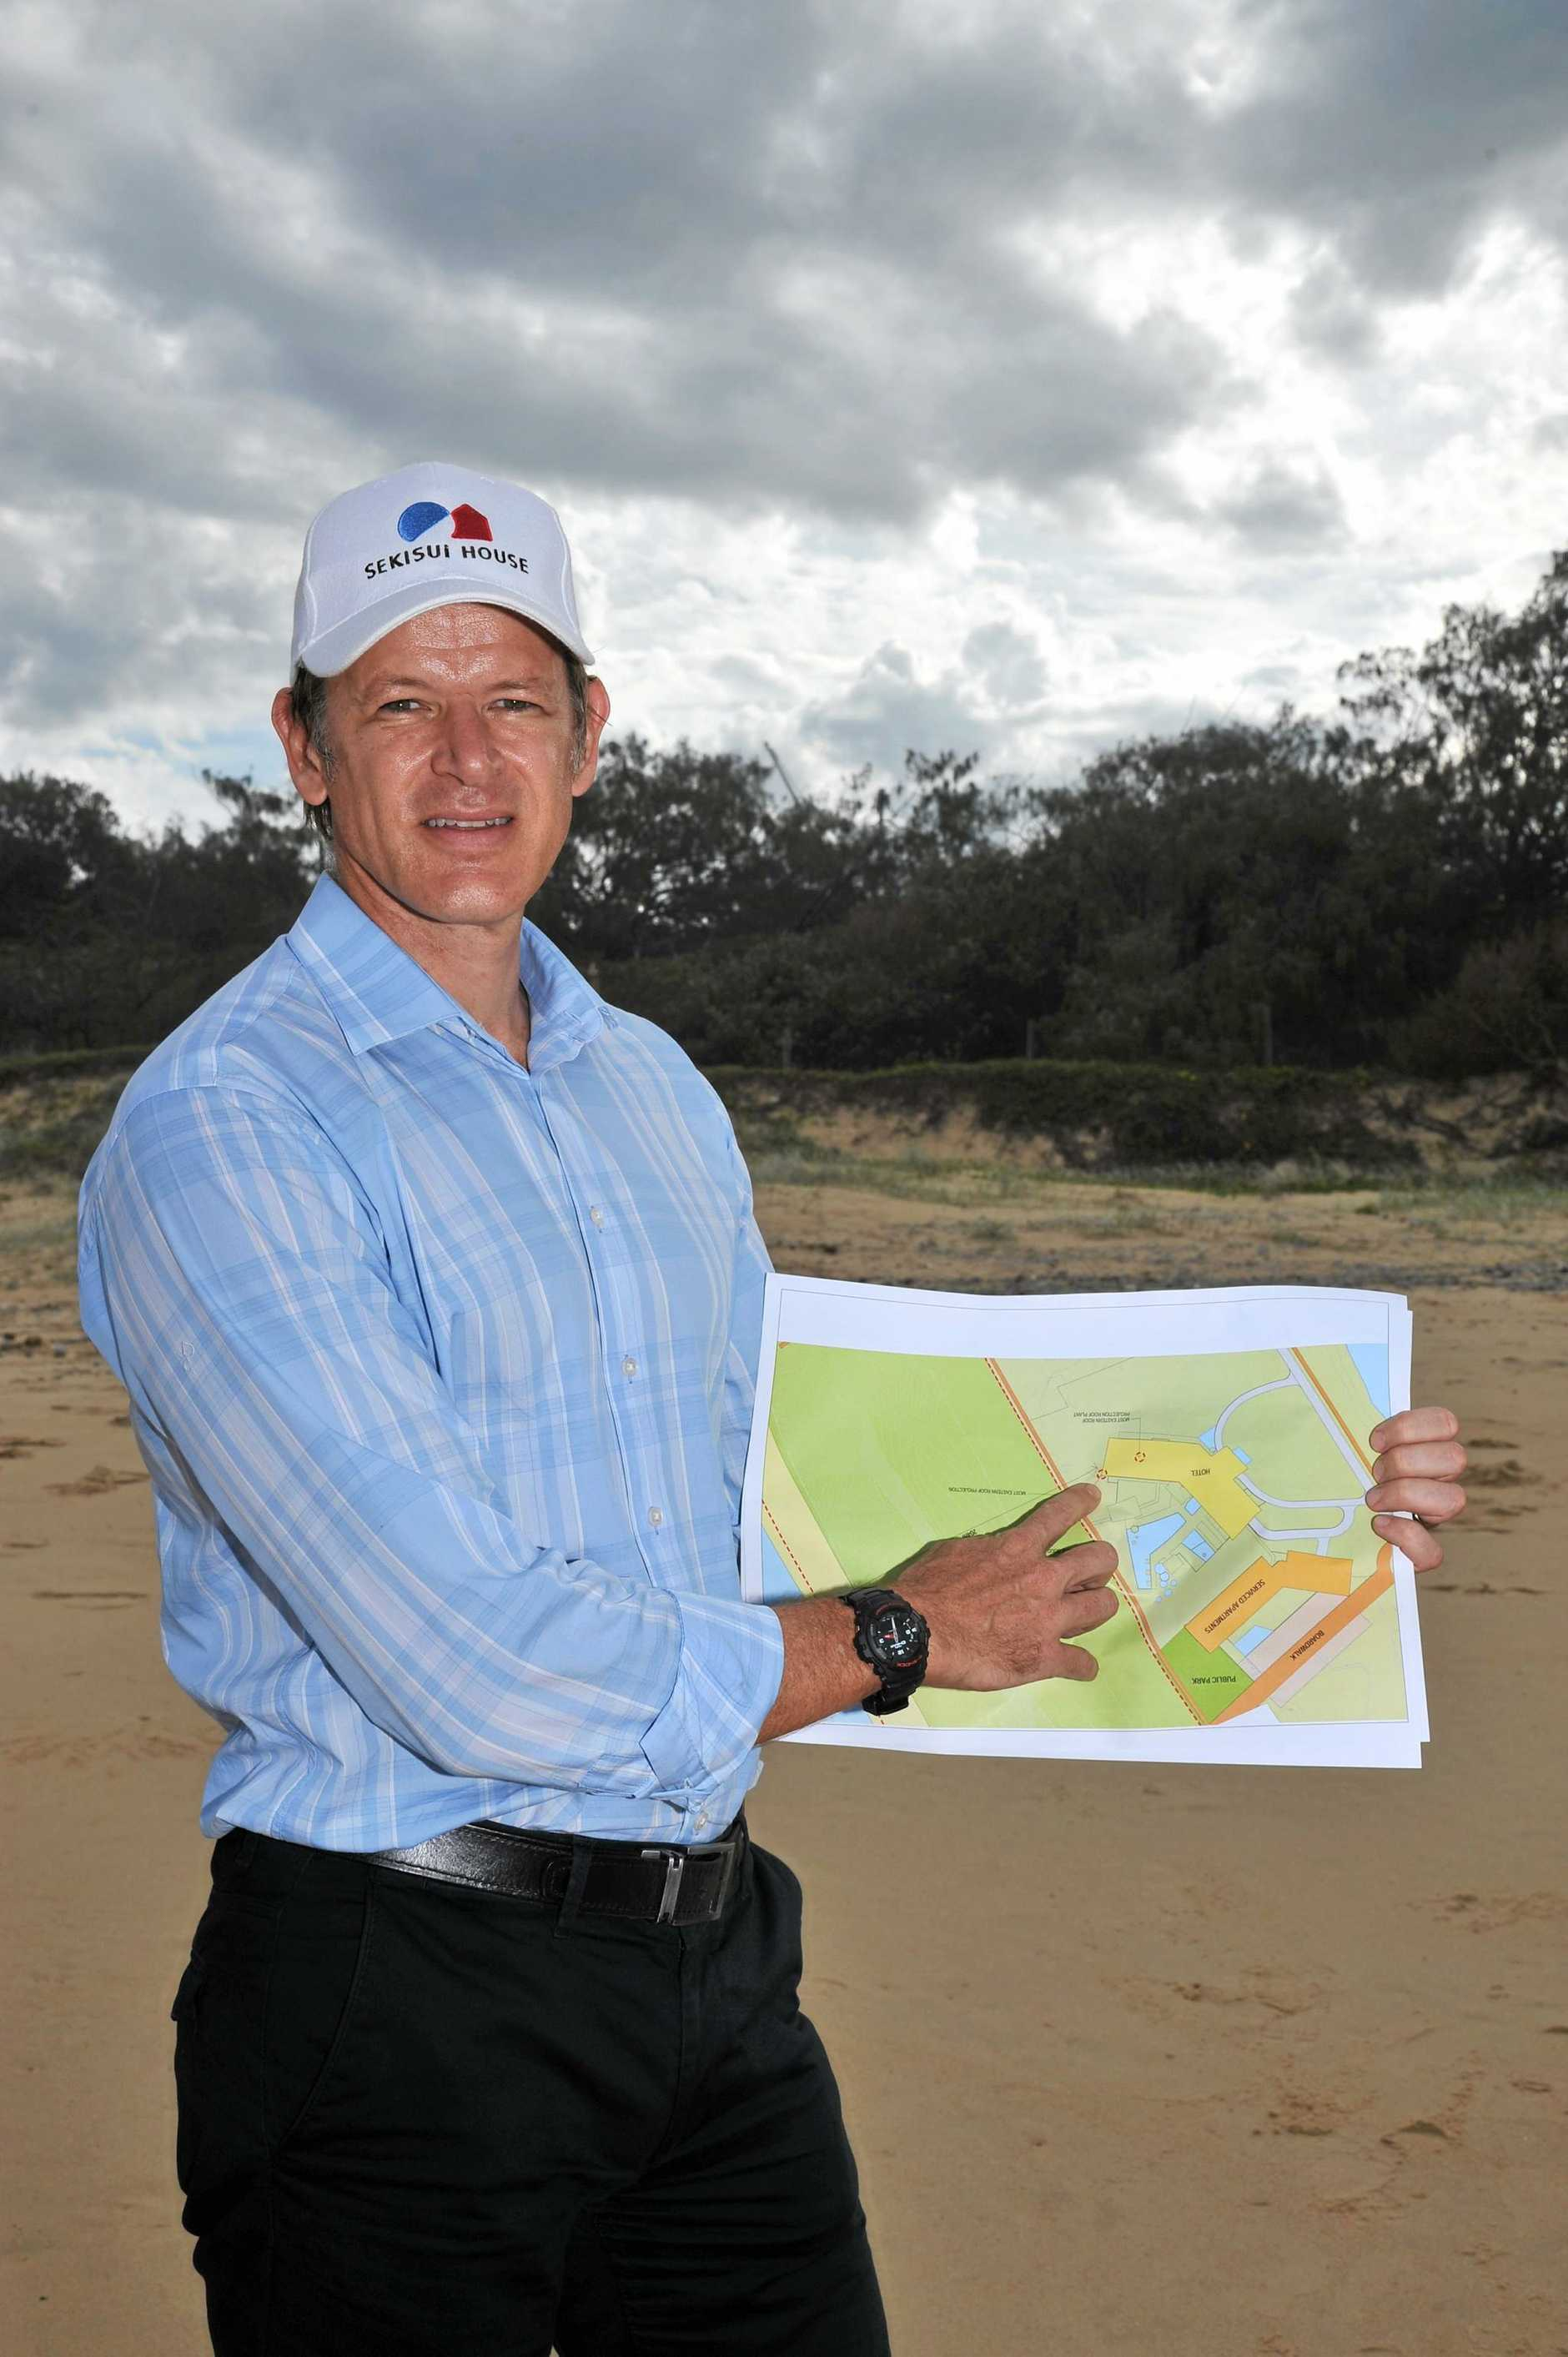 Sekisui erect cranes to show building height of the tallest proposed building plus the position of the front building. Sekisui House Senior Development Manager, Evan Aldridge on Yaroomba beach with cranes behind him.    Photo Greg Miller / Sunshine Coast Daily